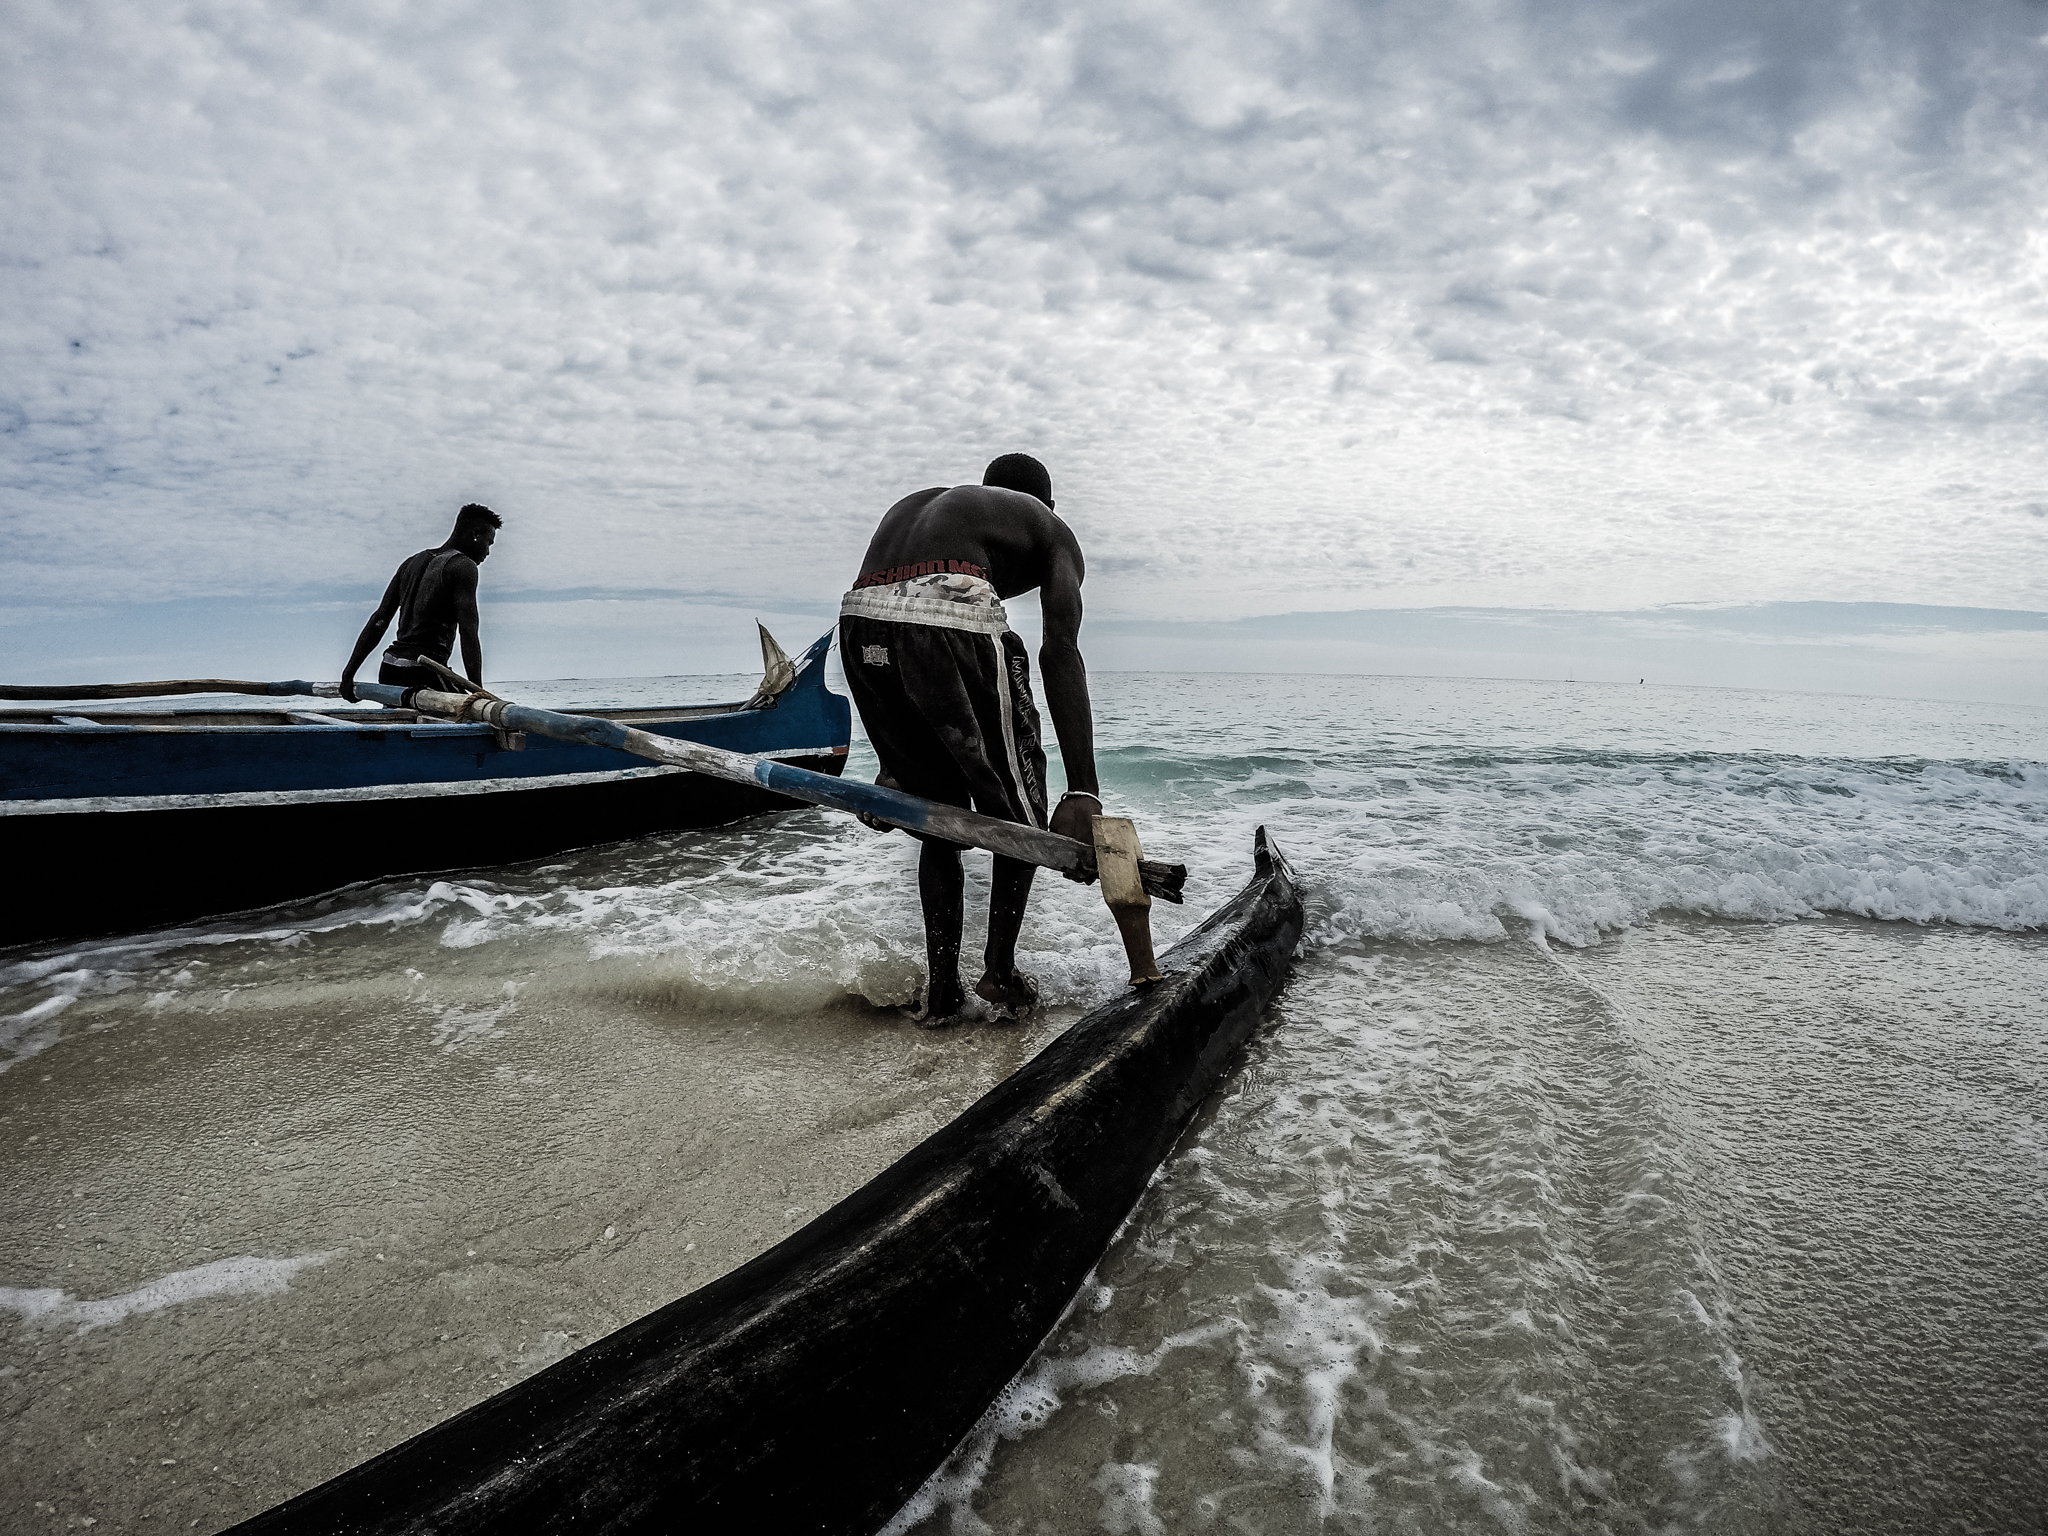 Lakanas (the standard fishing vessel) are constructed from trees felled in the neighbouring Kirindi National Park